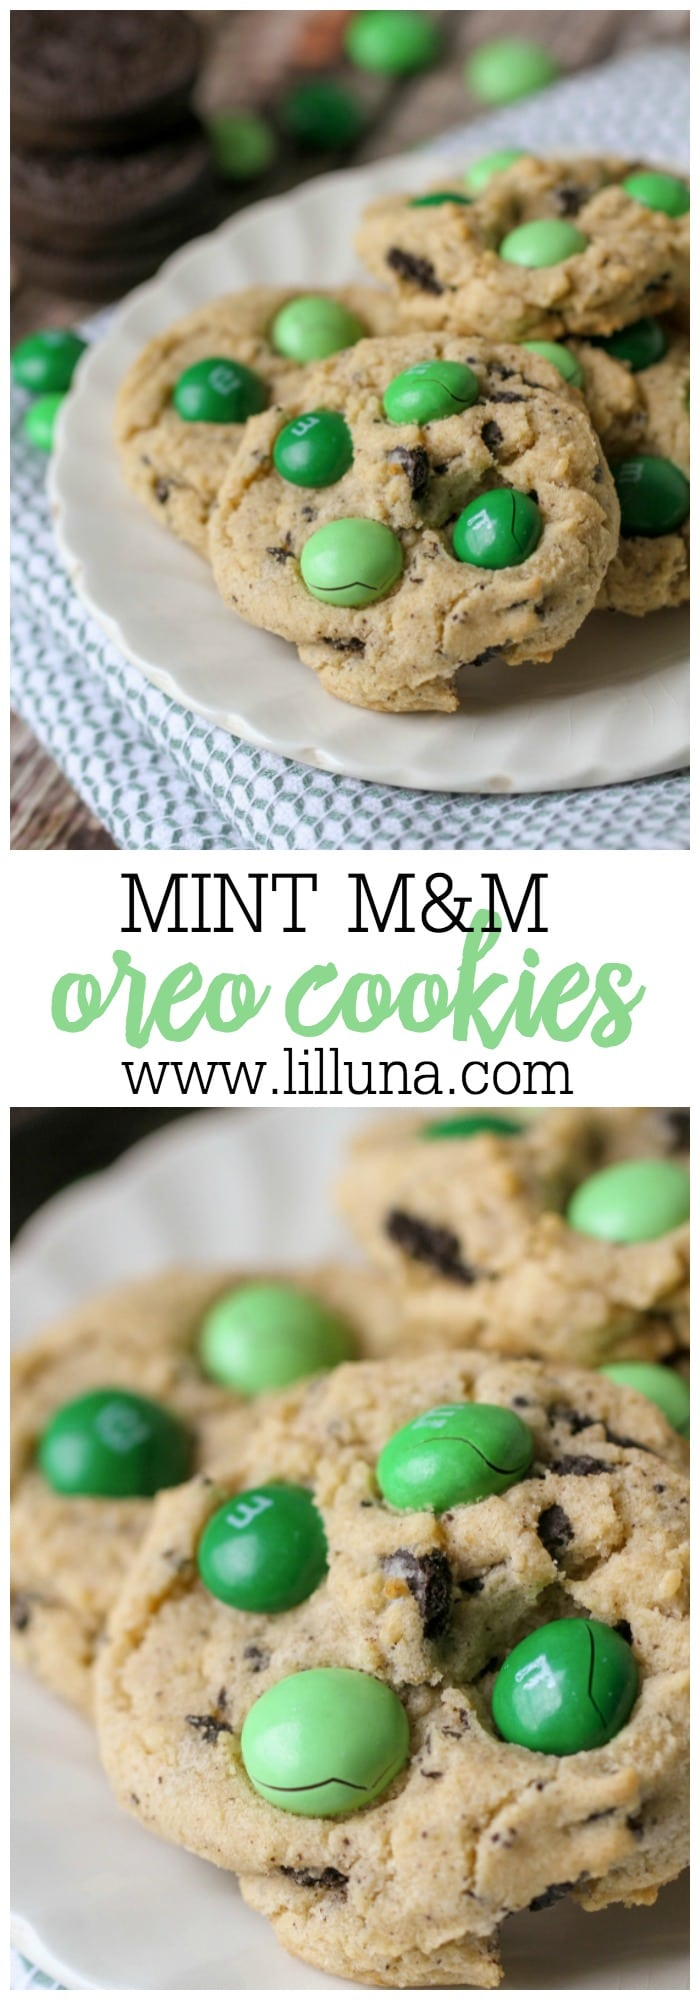 Mint M&M Oreo Cookies that taste JUST like Thin Mints!! The combination of the chocolate in the Oreos with the mint flavor in the M&M's make for one DELICIOUS cookie!!